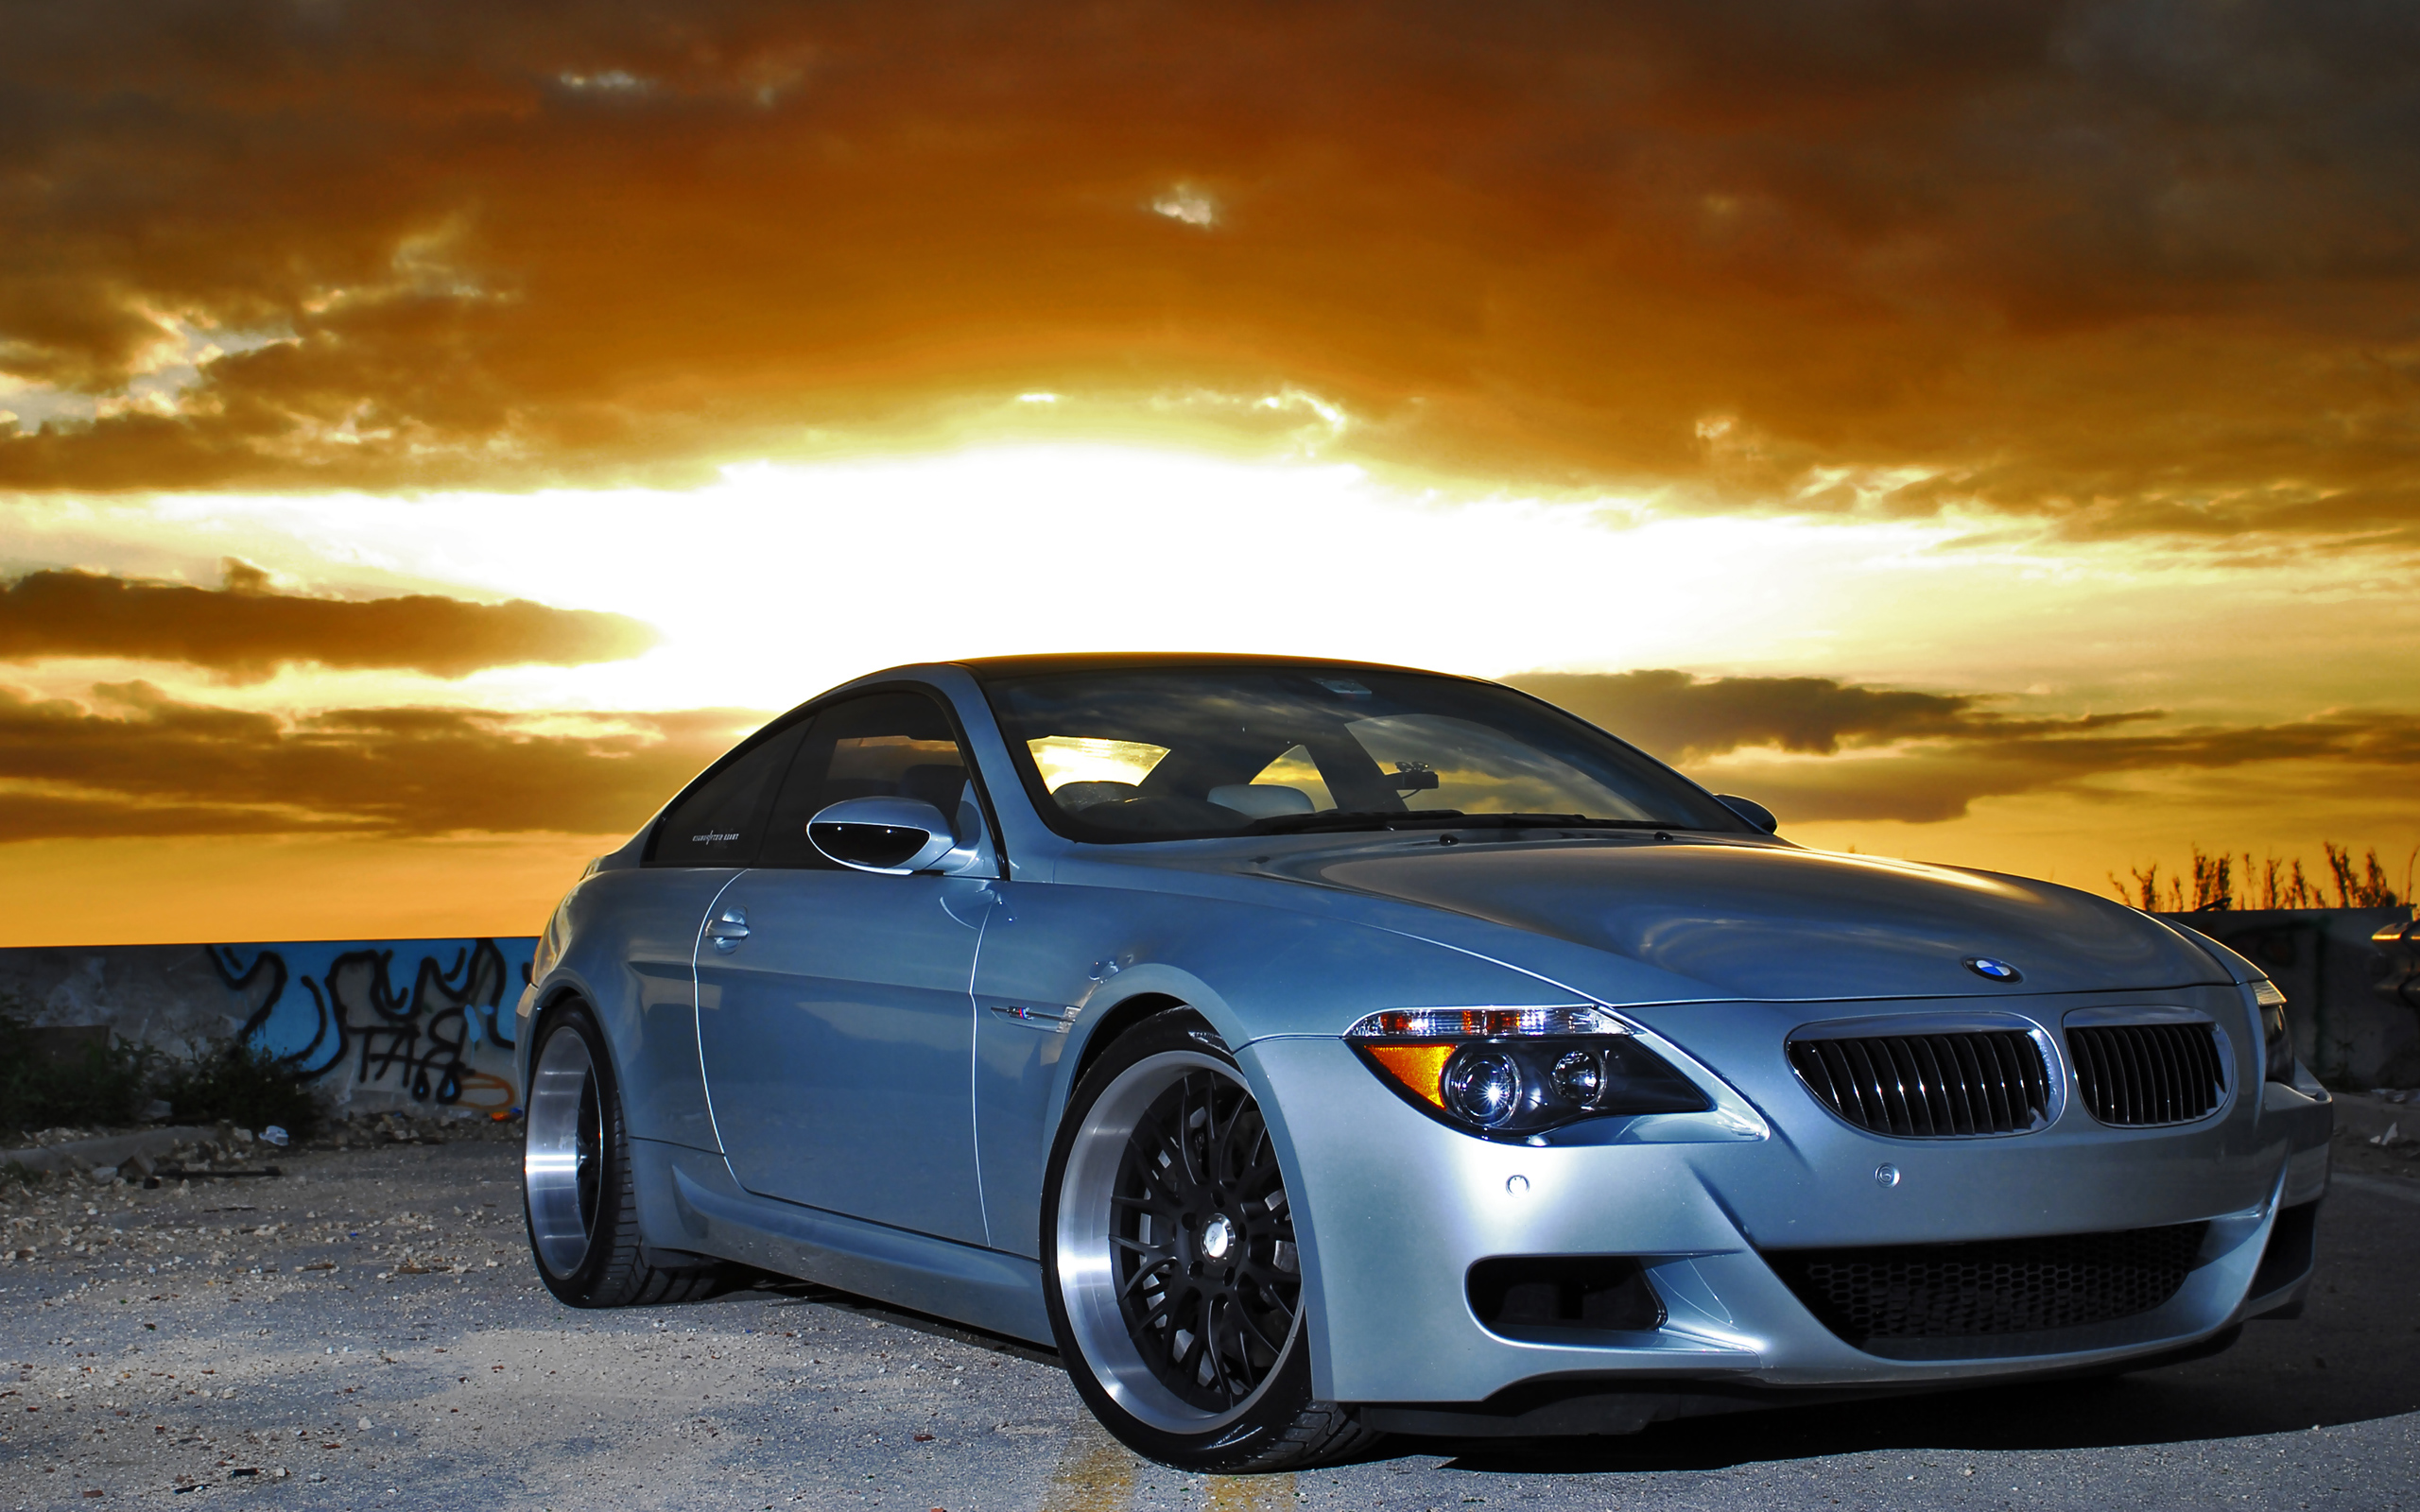 View Of Bmw M6 D2forged Vs4 Wheels Hd Wallpapers : Hd Car Wallpapers ...